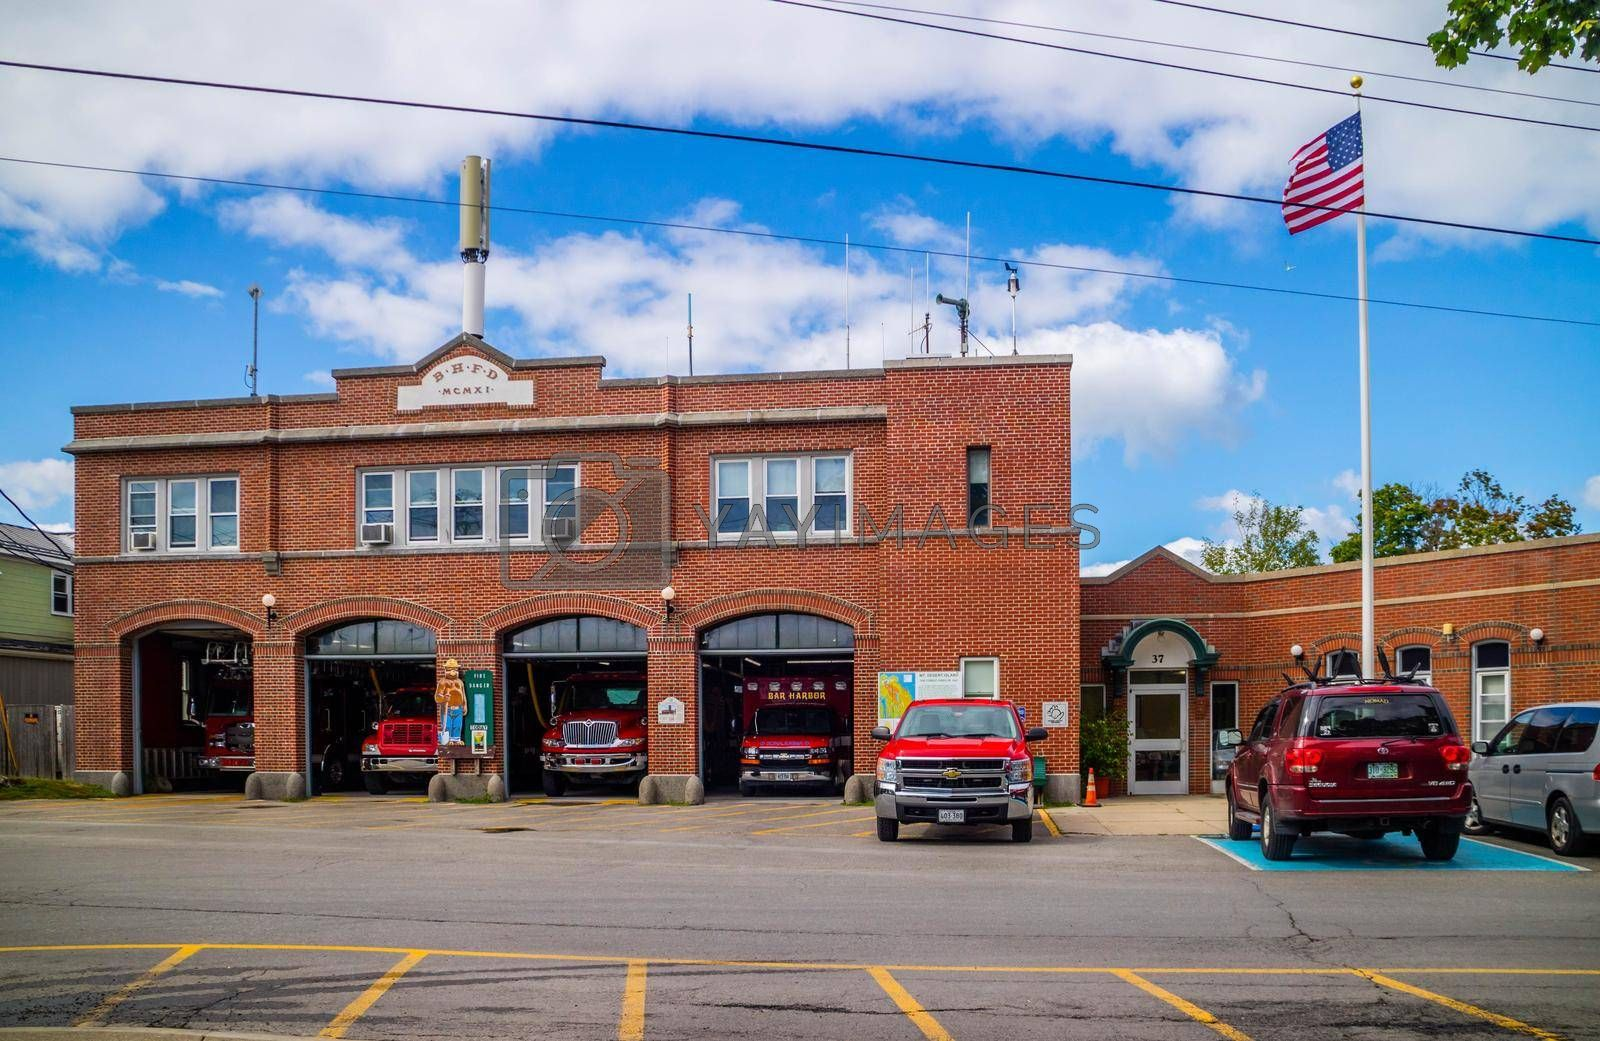 Royalty free image of Bar Harbor, ME, USA - August 19, 2018: The BHFD fire department by cherialguire